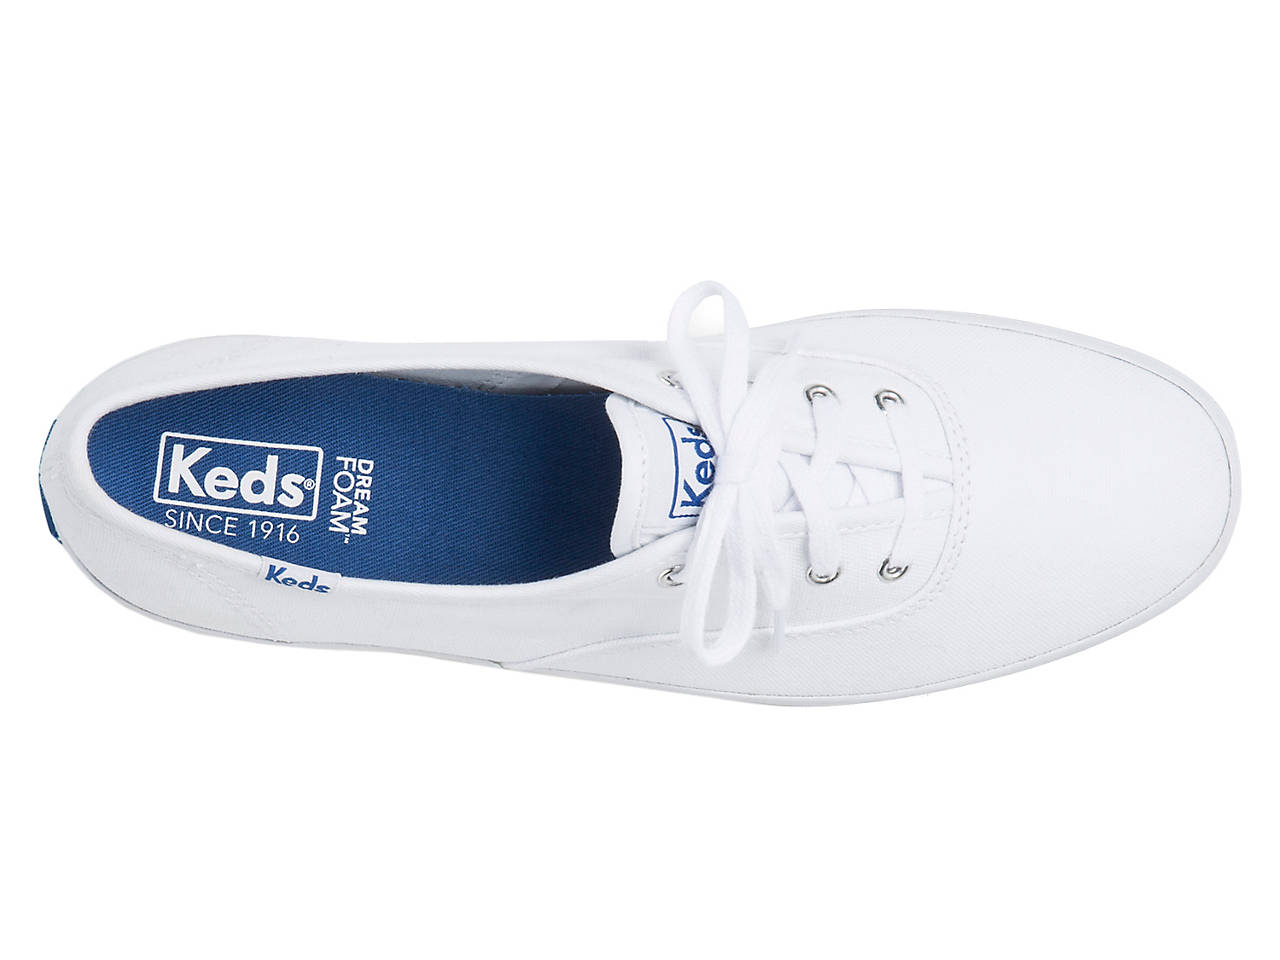 affe78cd88c Keds Champion Sneaker - Women s Women s Shoes